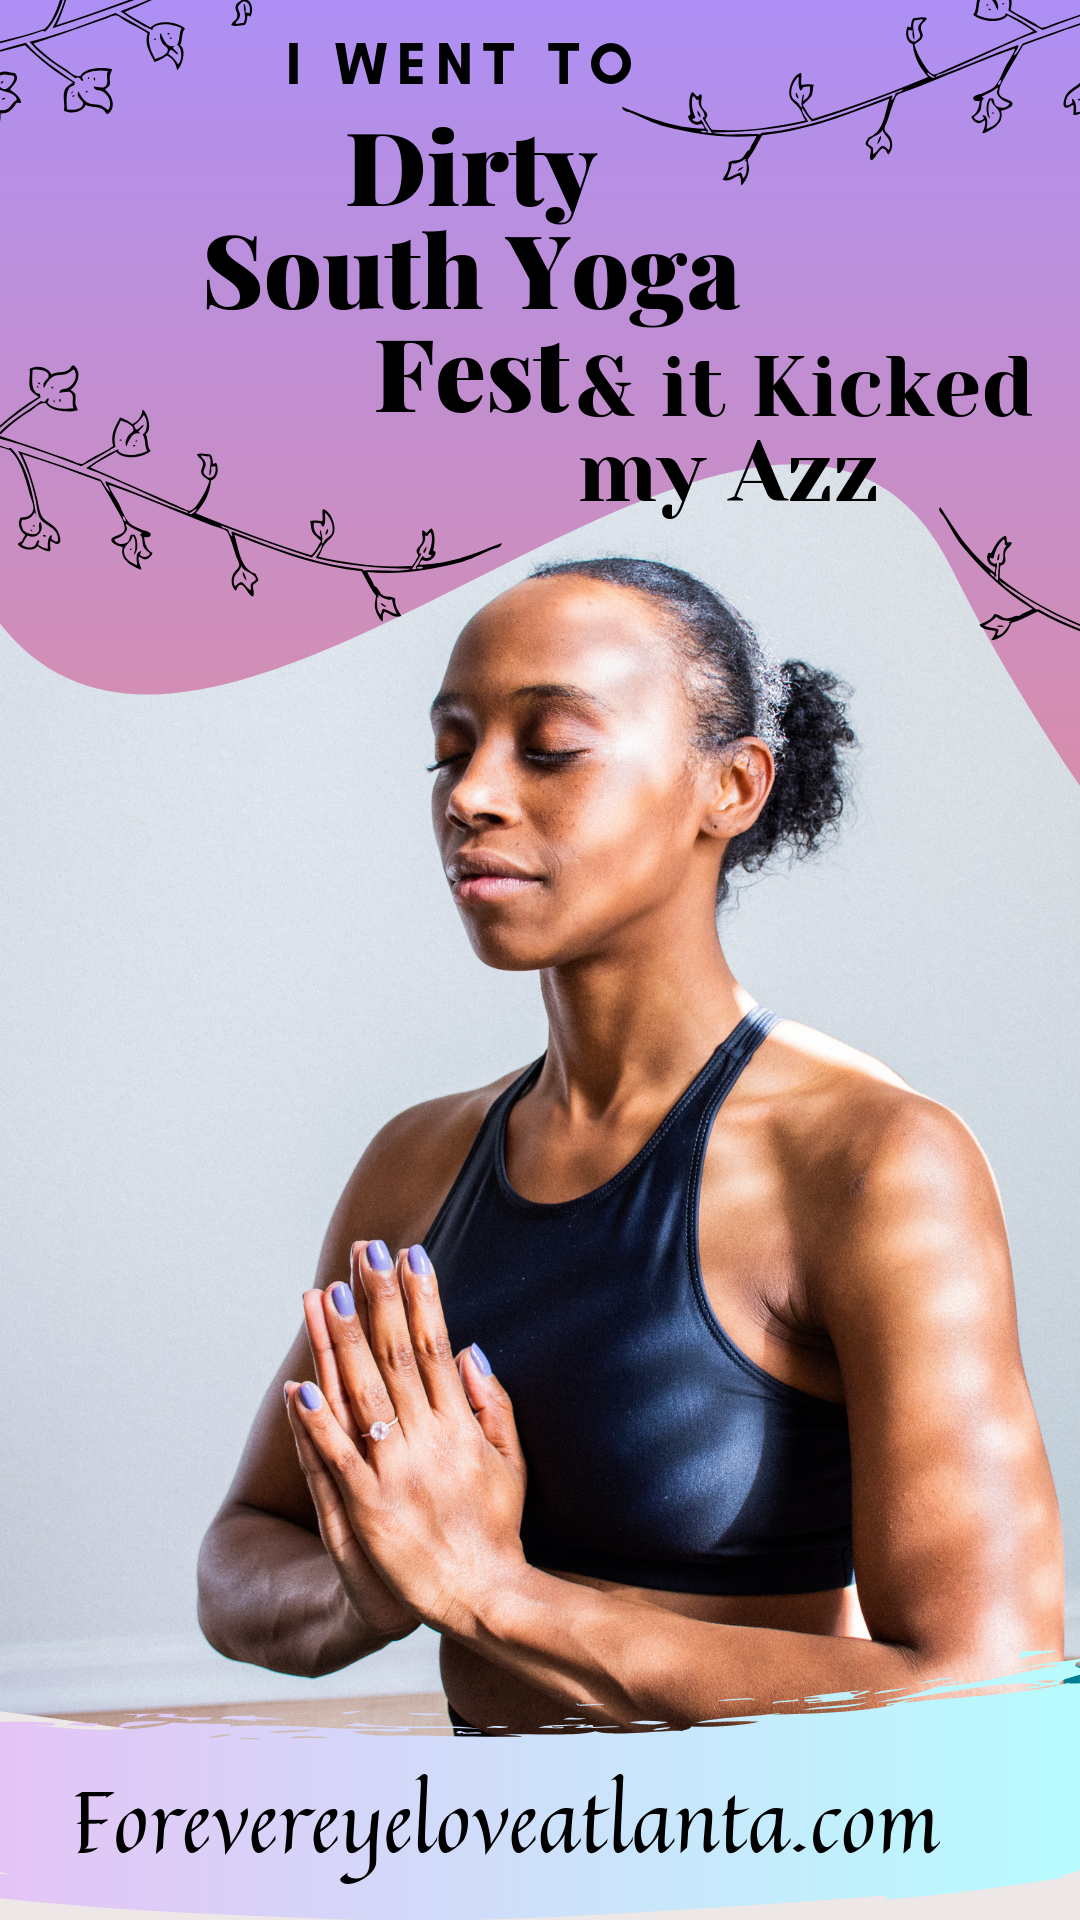 I went to Dirty South Yoga Festival & it kicked my ass. #Atlanta #Wanderlust #howtoteach